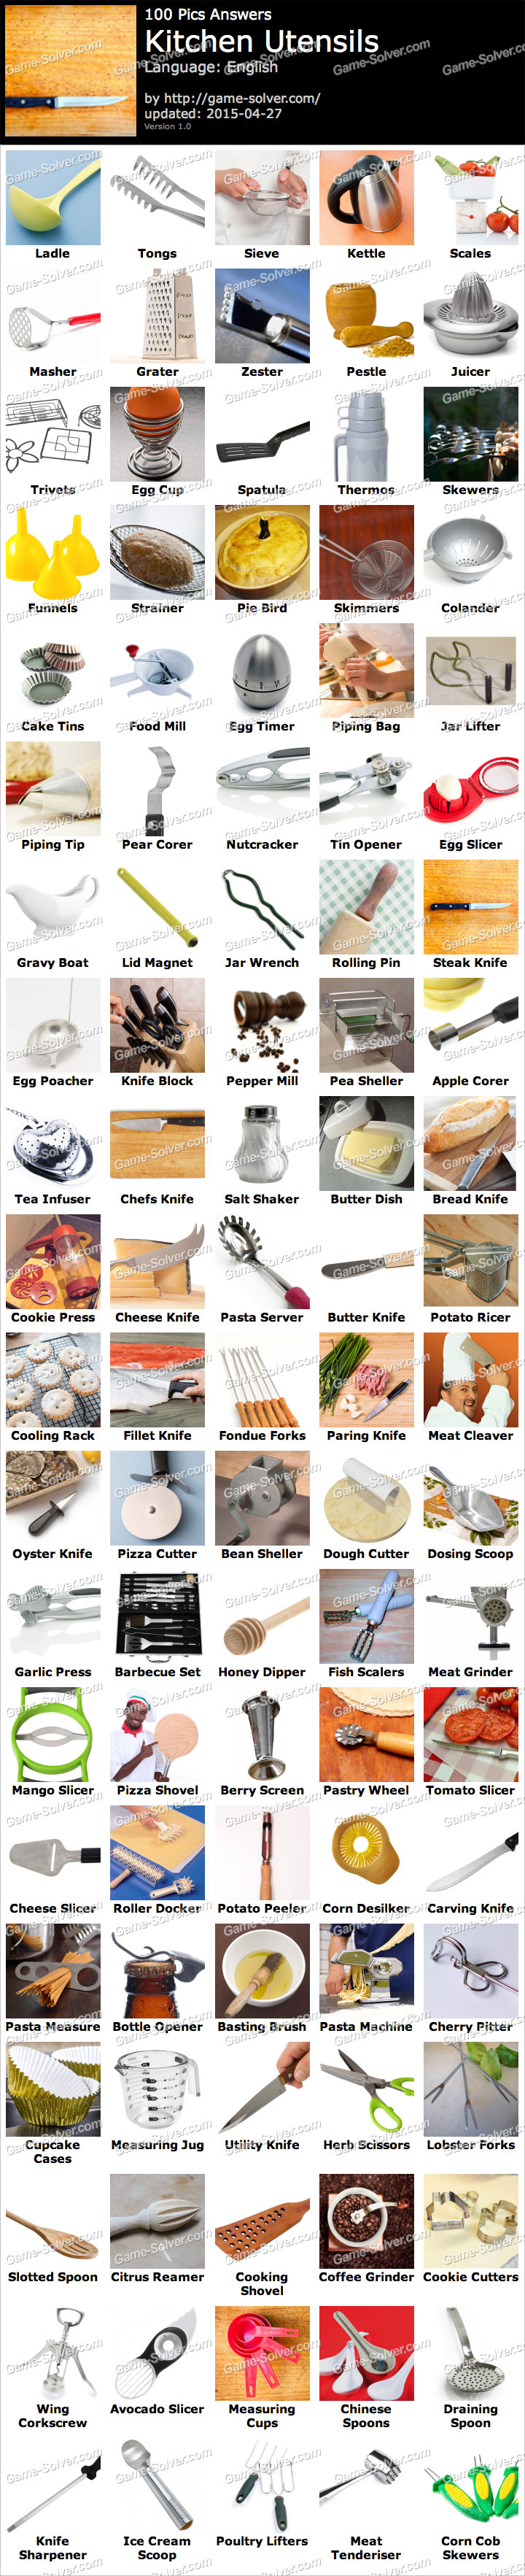 100 Pics Kitchen Utensils - Game Solver